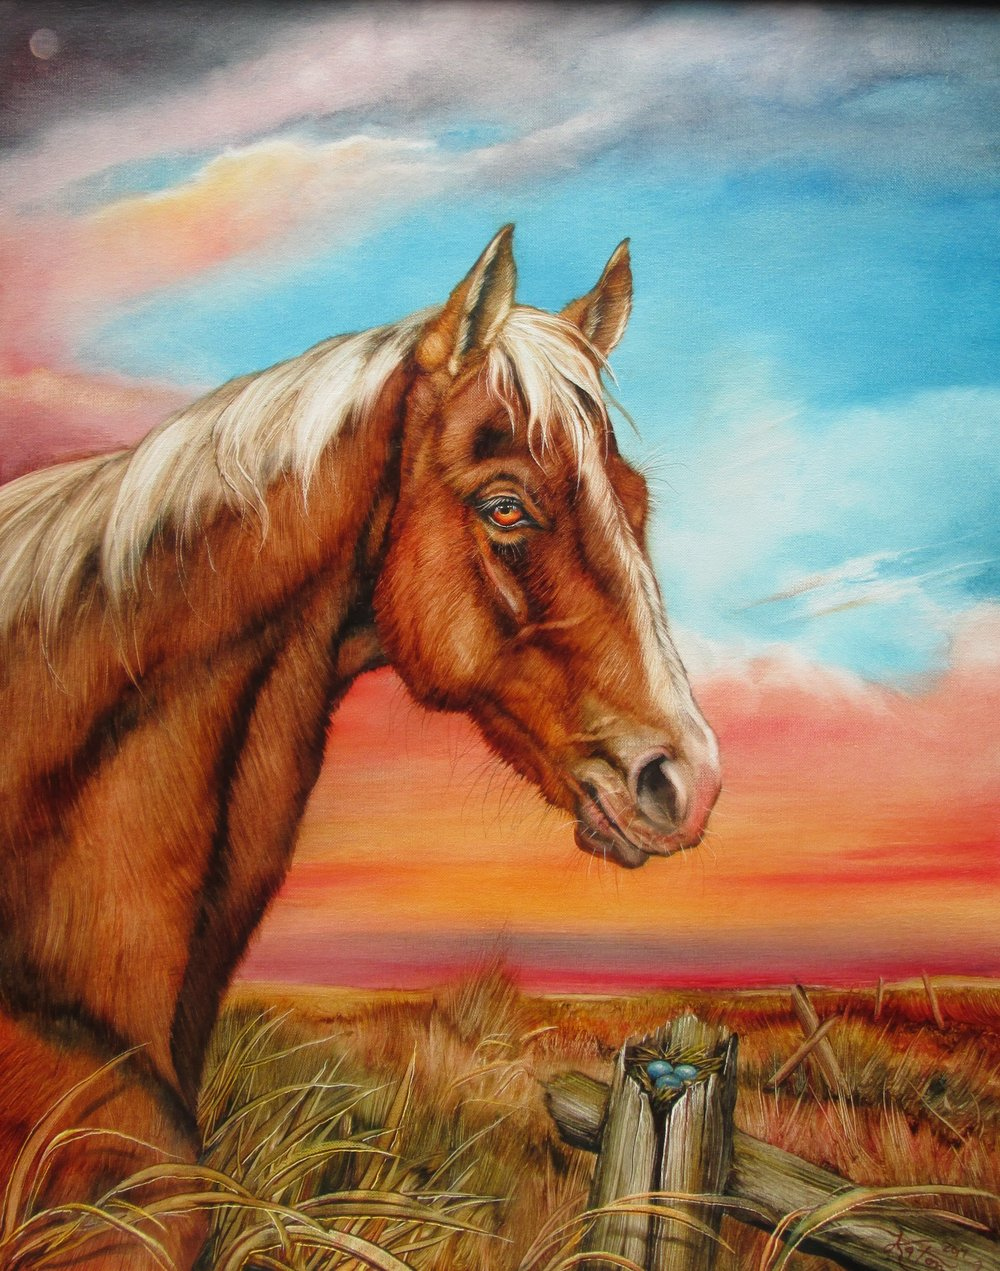 Horse and Friend.JPG